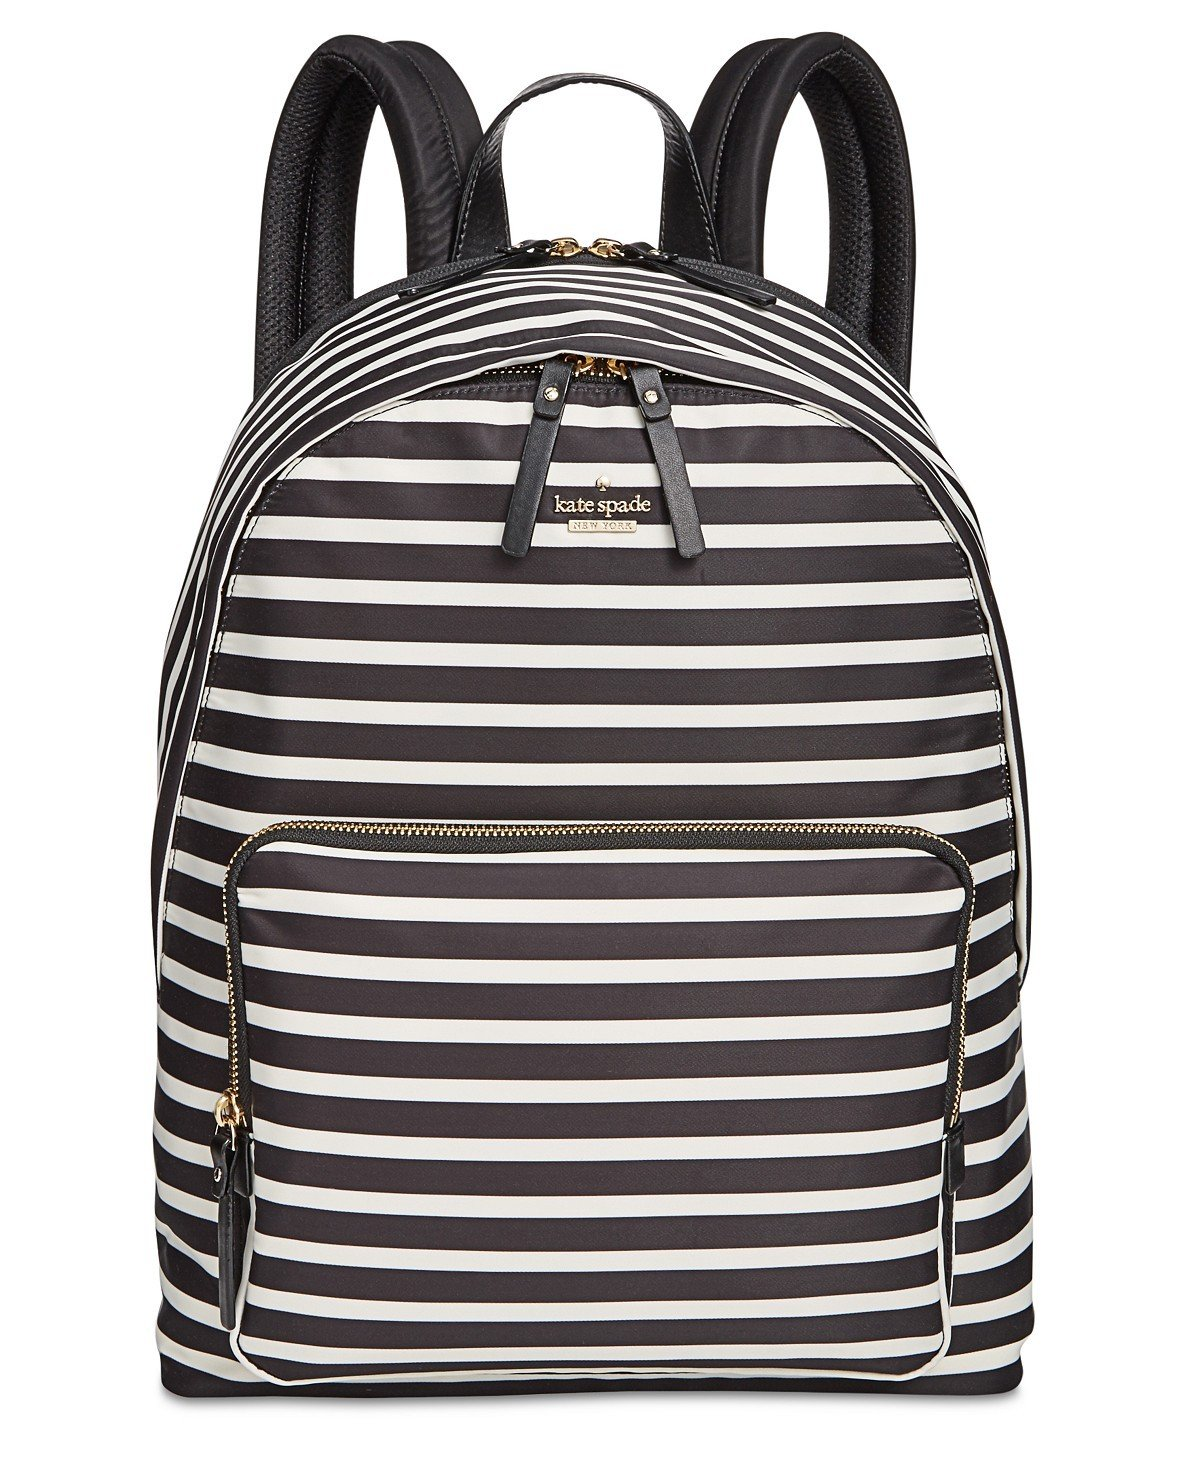 Cute Laptop Backpack